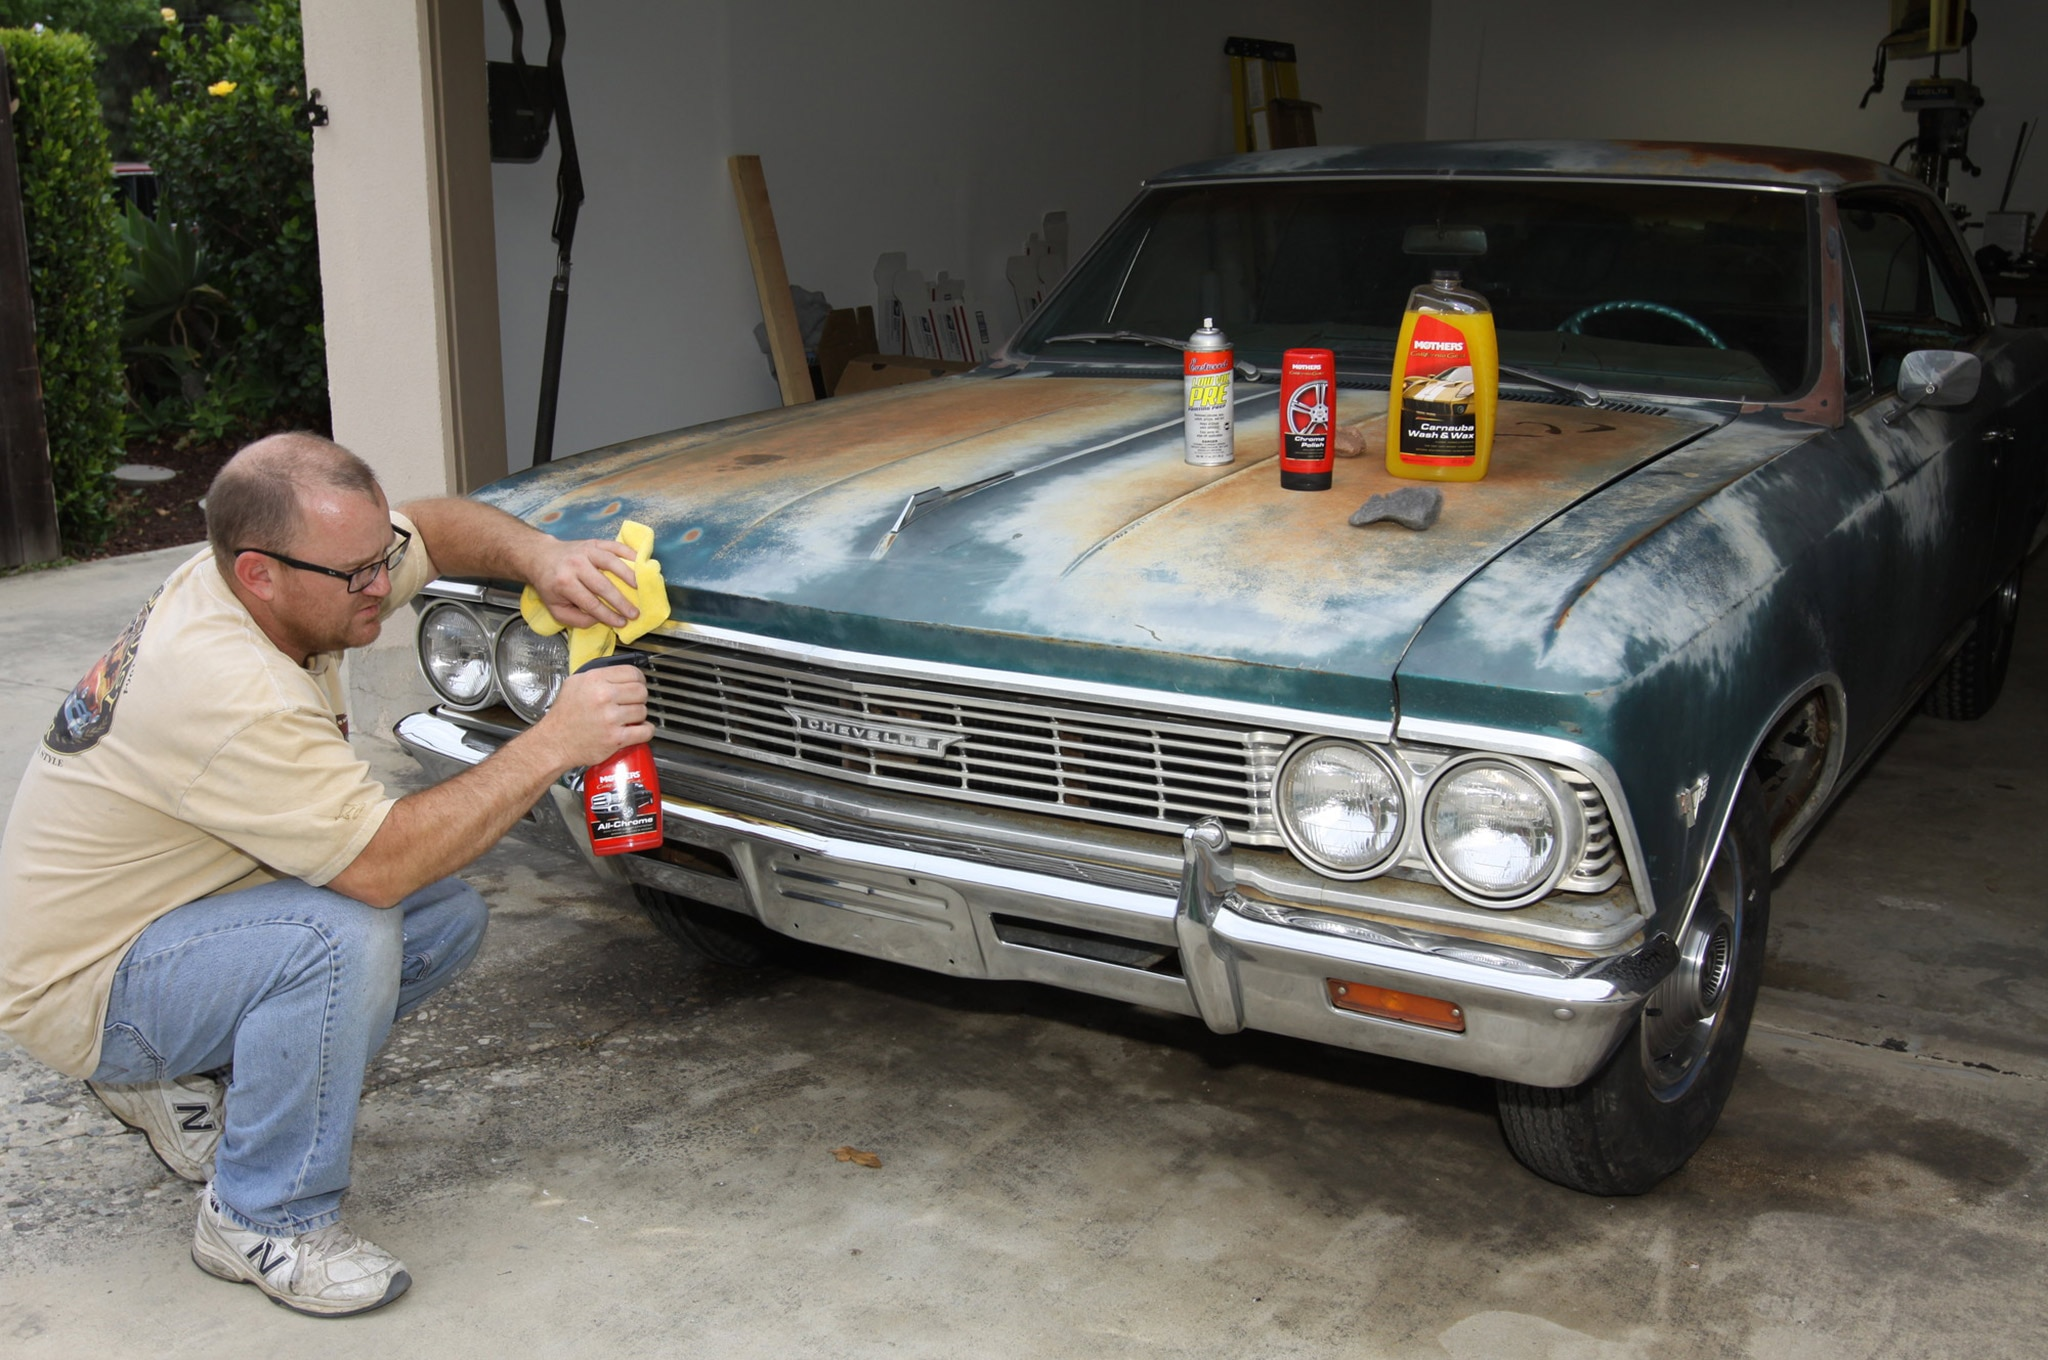 The Definitive Guide to Restoring and Caring for Car Chrome